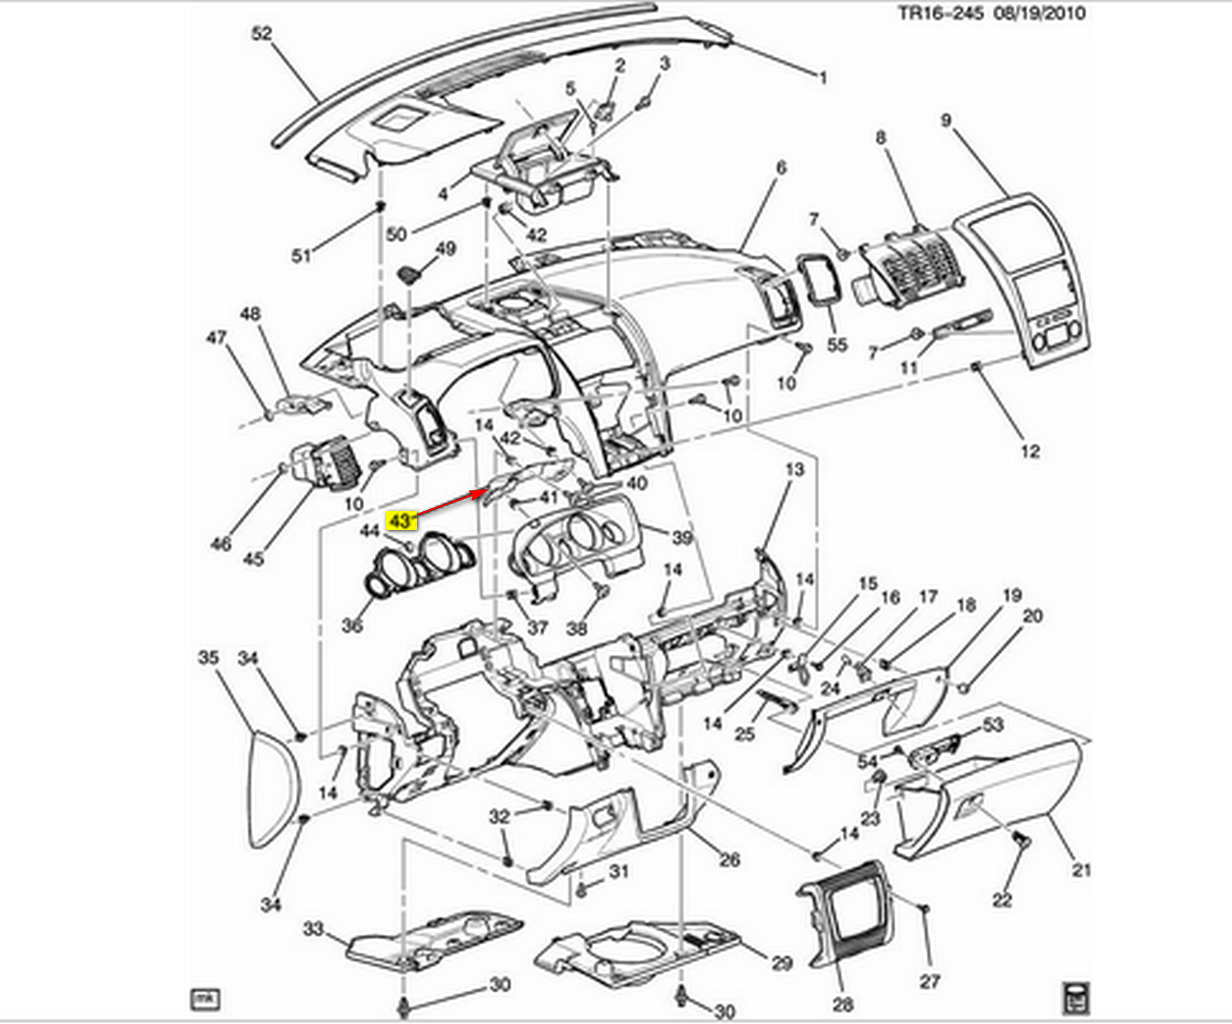 service manual  2008 gmc sierra 3500 dash removal diagram